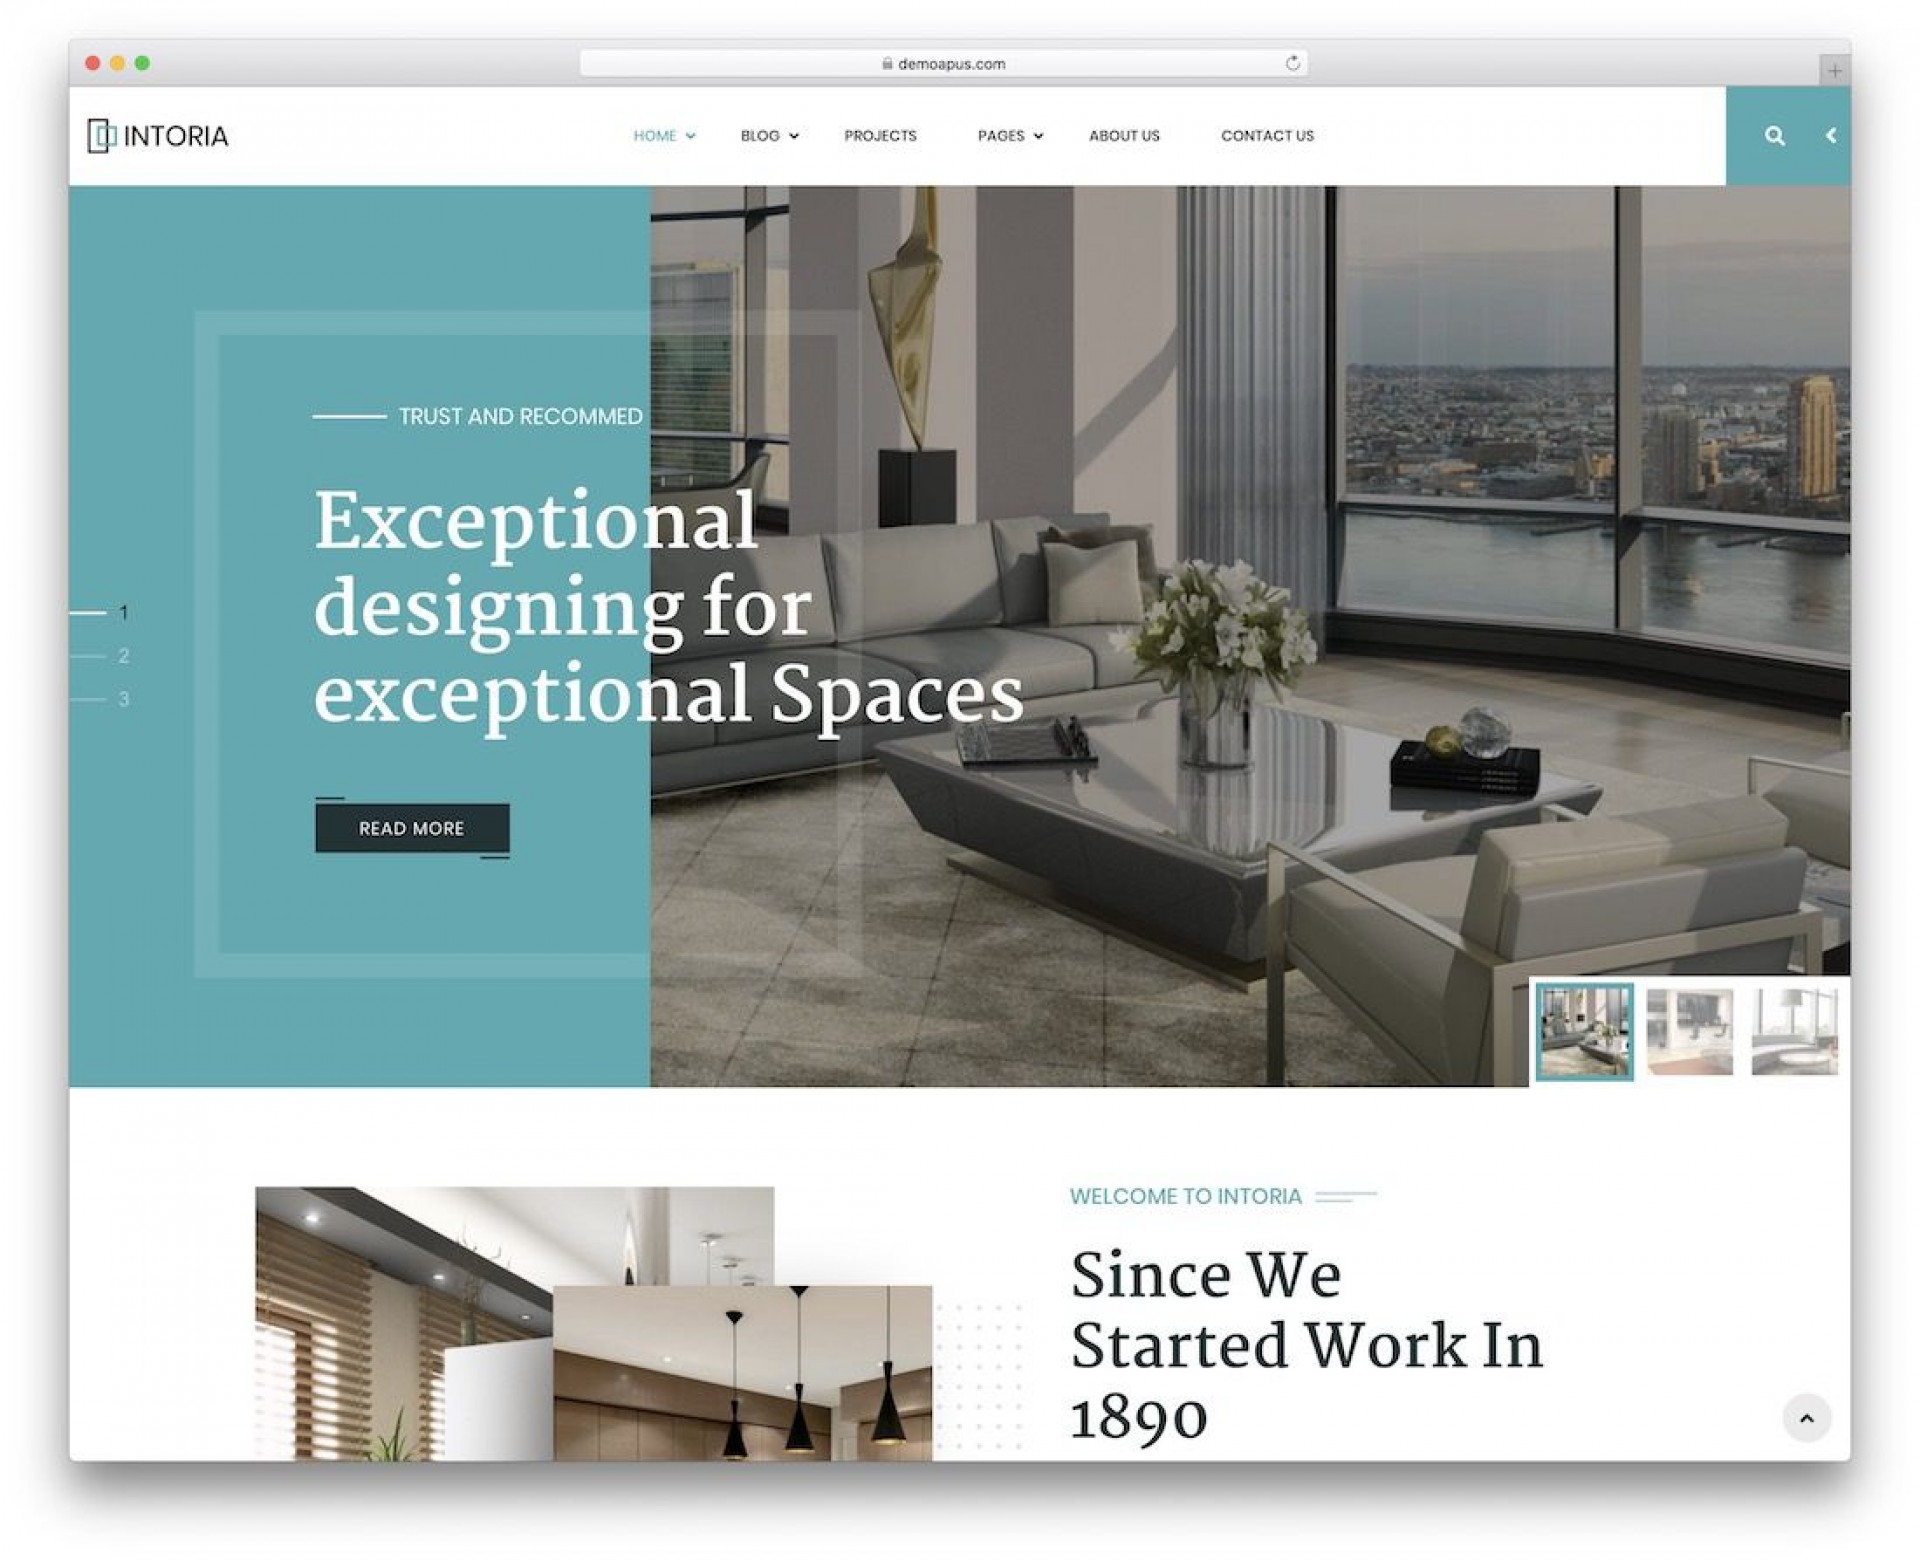 006 Incredible Interior Design Website Template Image  Templates Company Free Download Html1920